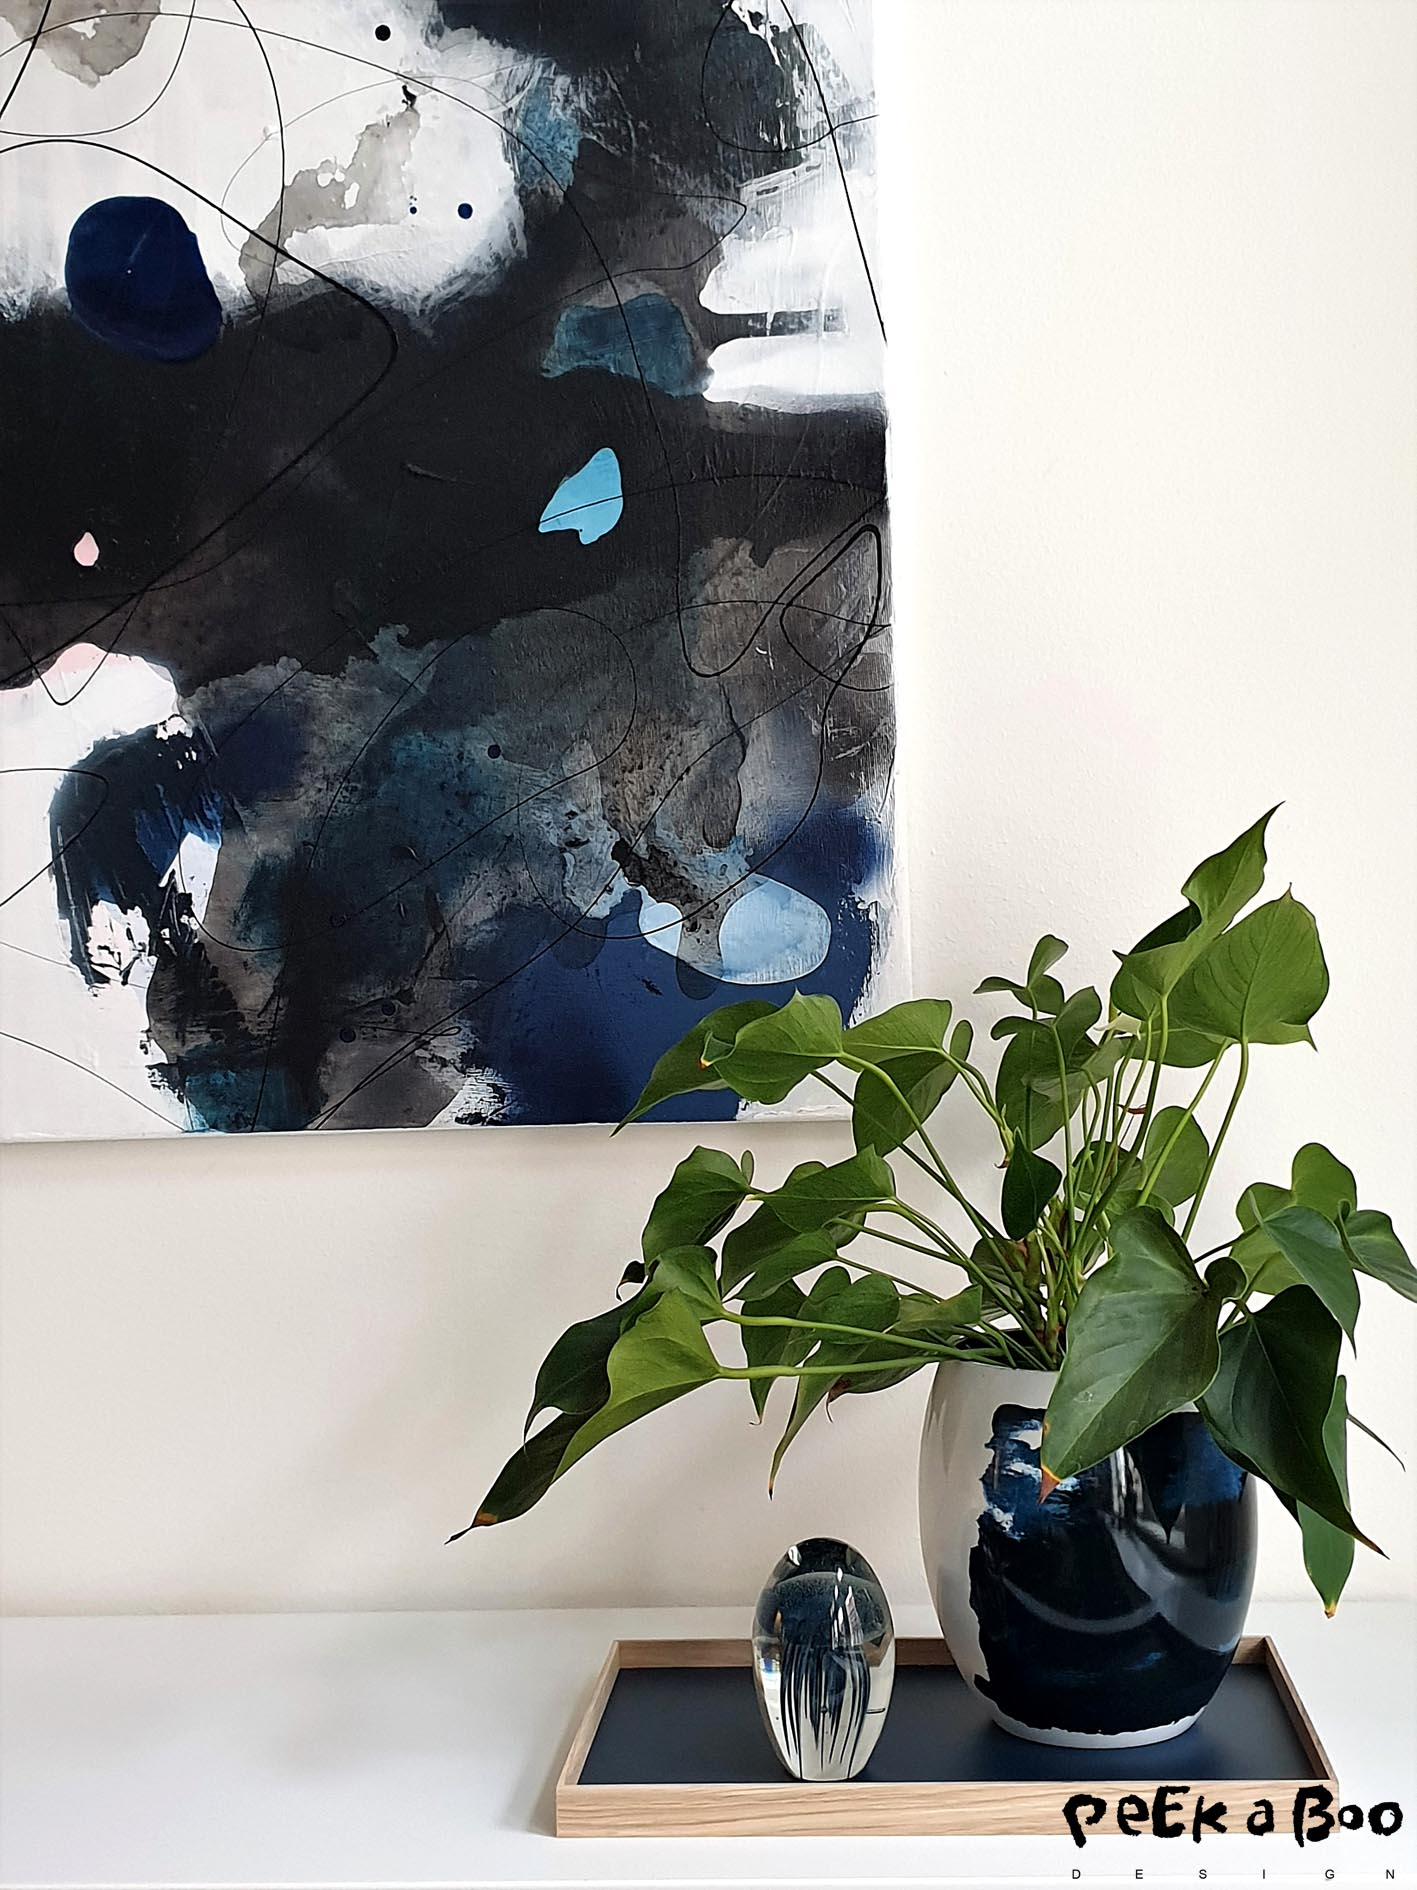 Artwork by Lerfeldt Bjerker and the vase is from Stelton designed by Bernadotte & Kylberg called Stockholm Aquatic.